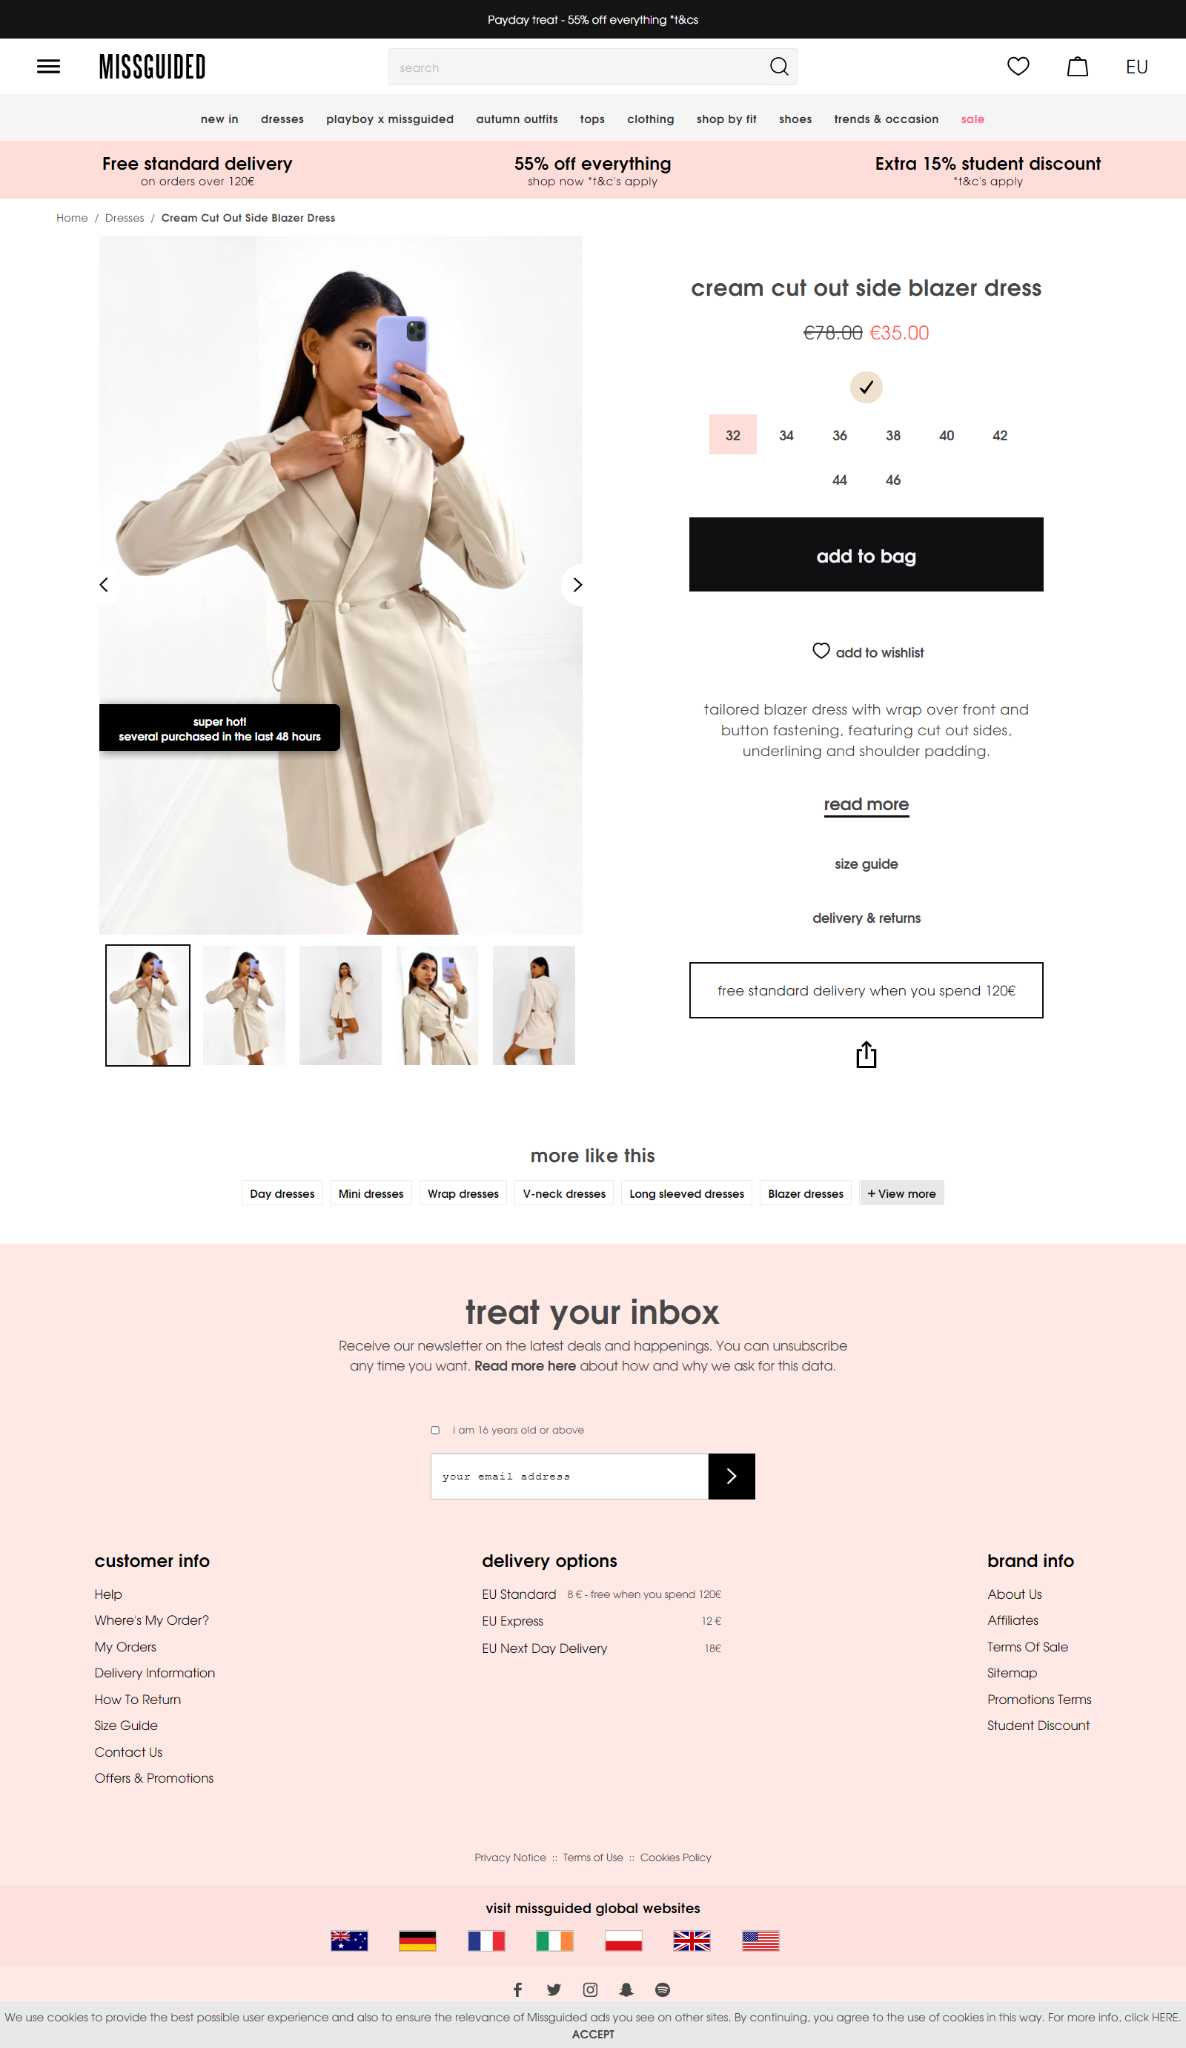 Missguided strategically places their content on the product page